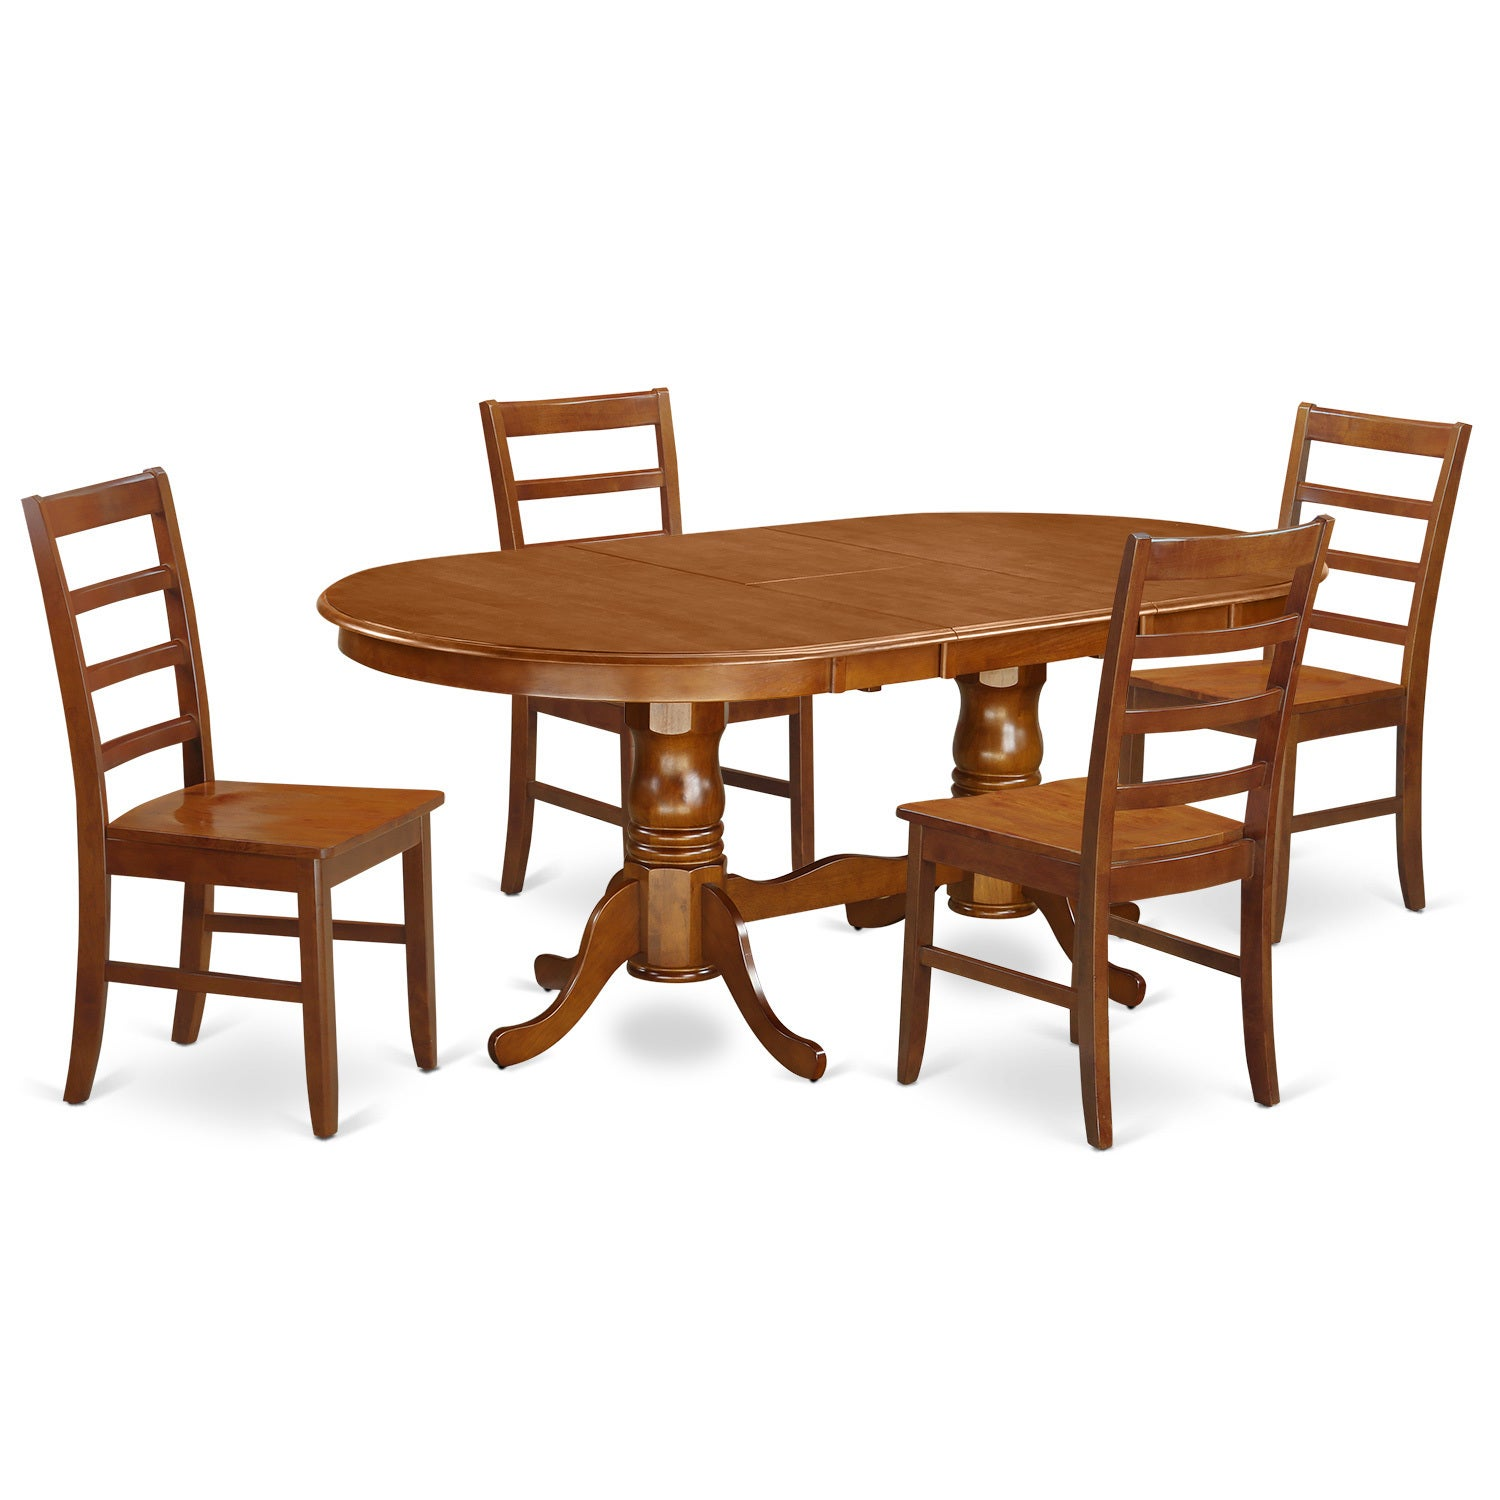 PLPF5-SBR-W Brown Rubberwood 5-piece Dining Room Set with...